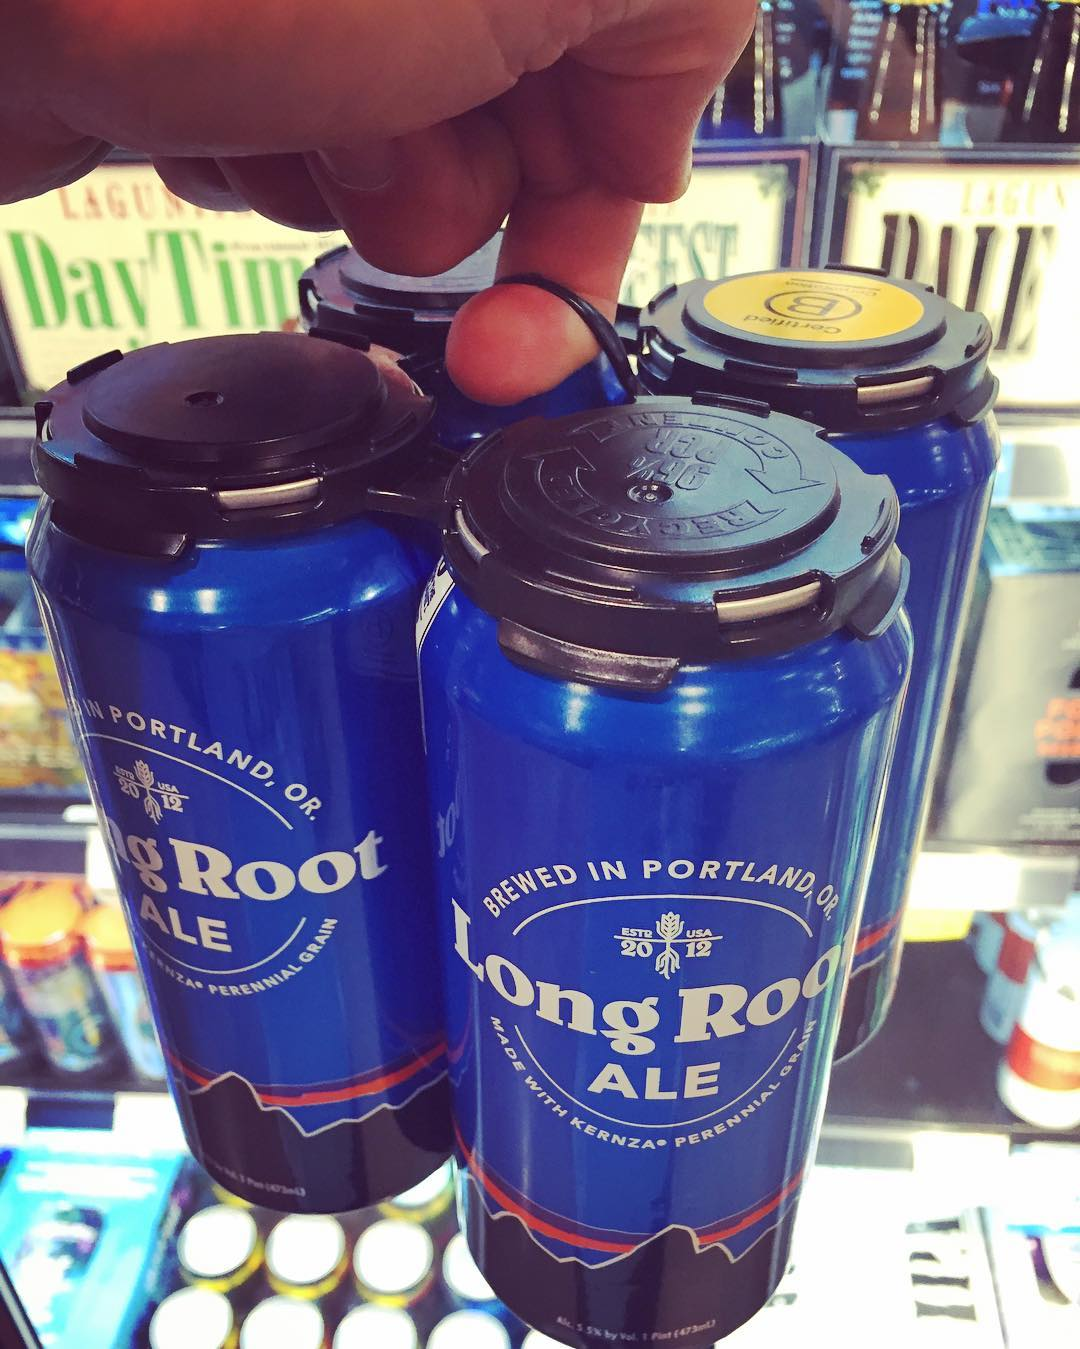 #Perennial favorites are now #blooming in the fridge at @WholeFoods, and this new brew from @patagoniaprovisions has a very tasty #Long tap #Root